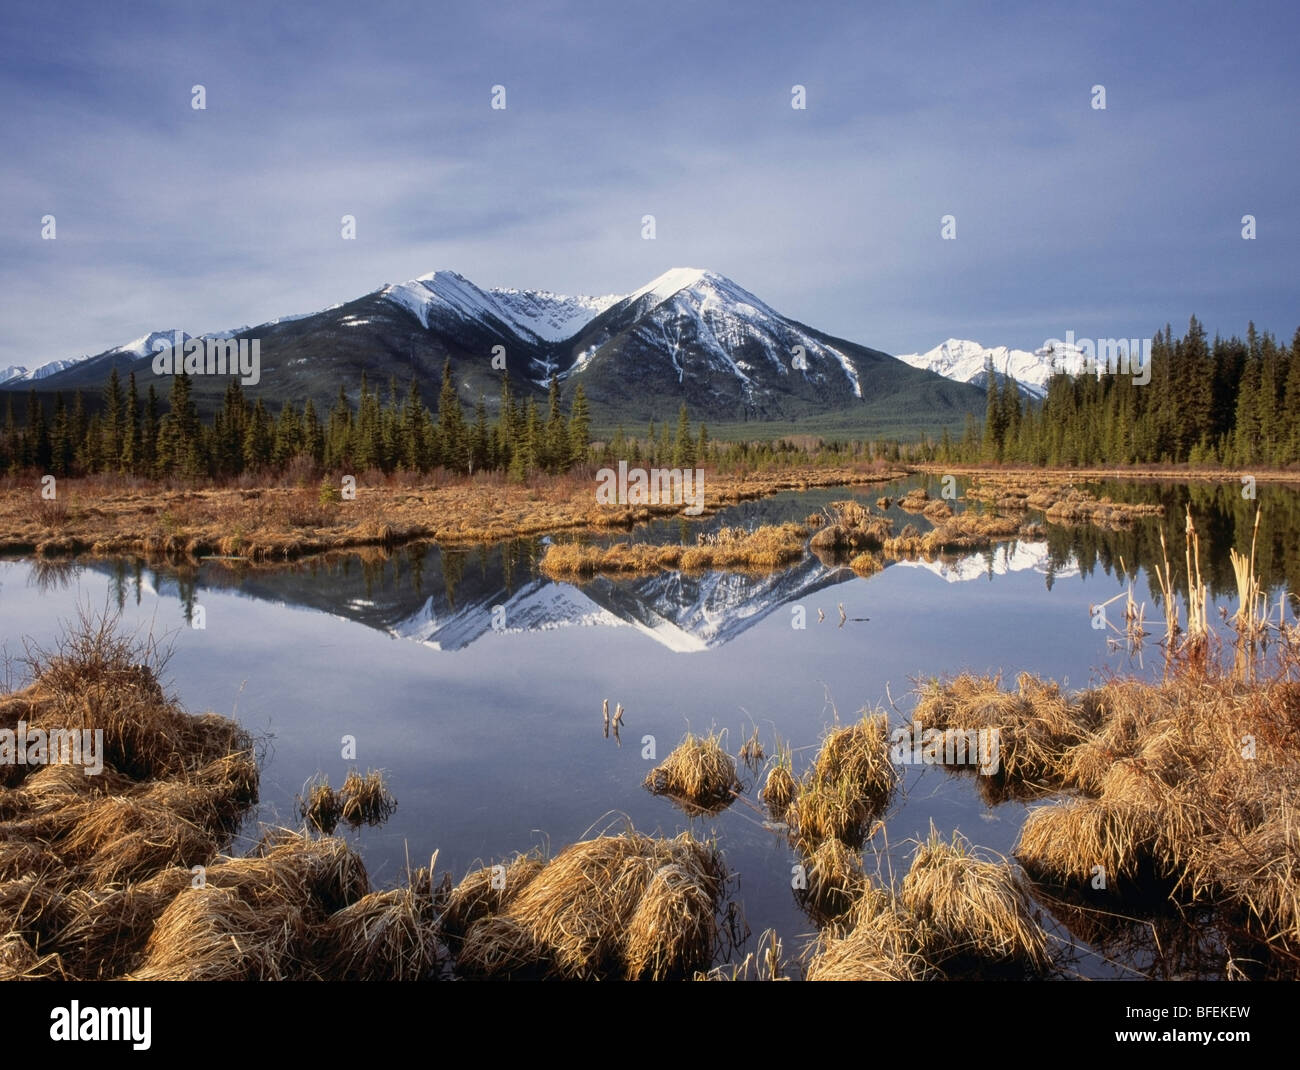 The Sundance Range and the Third Vermilion Lake, Banff National Park, Alberta, Canada - Stock Image